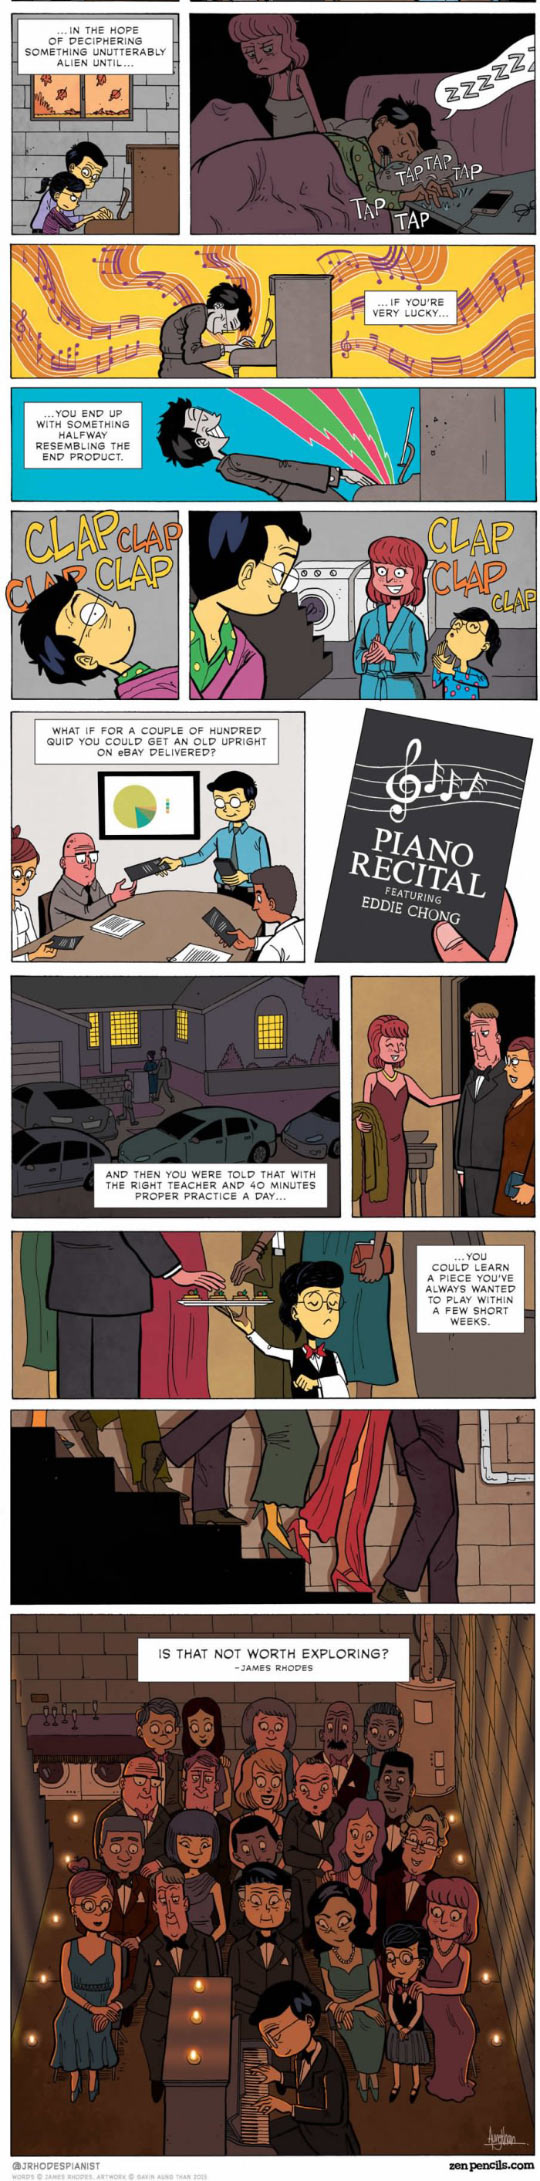 funny-quote-piano-learning-comic-family